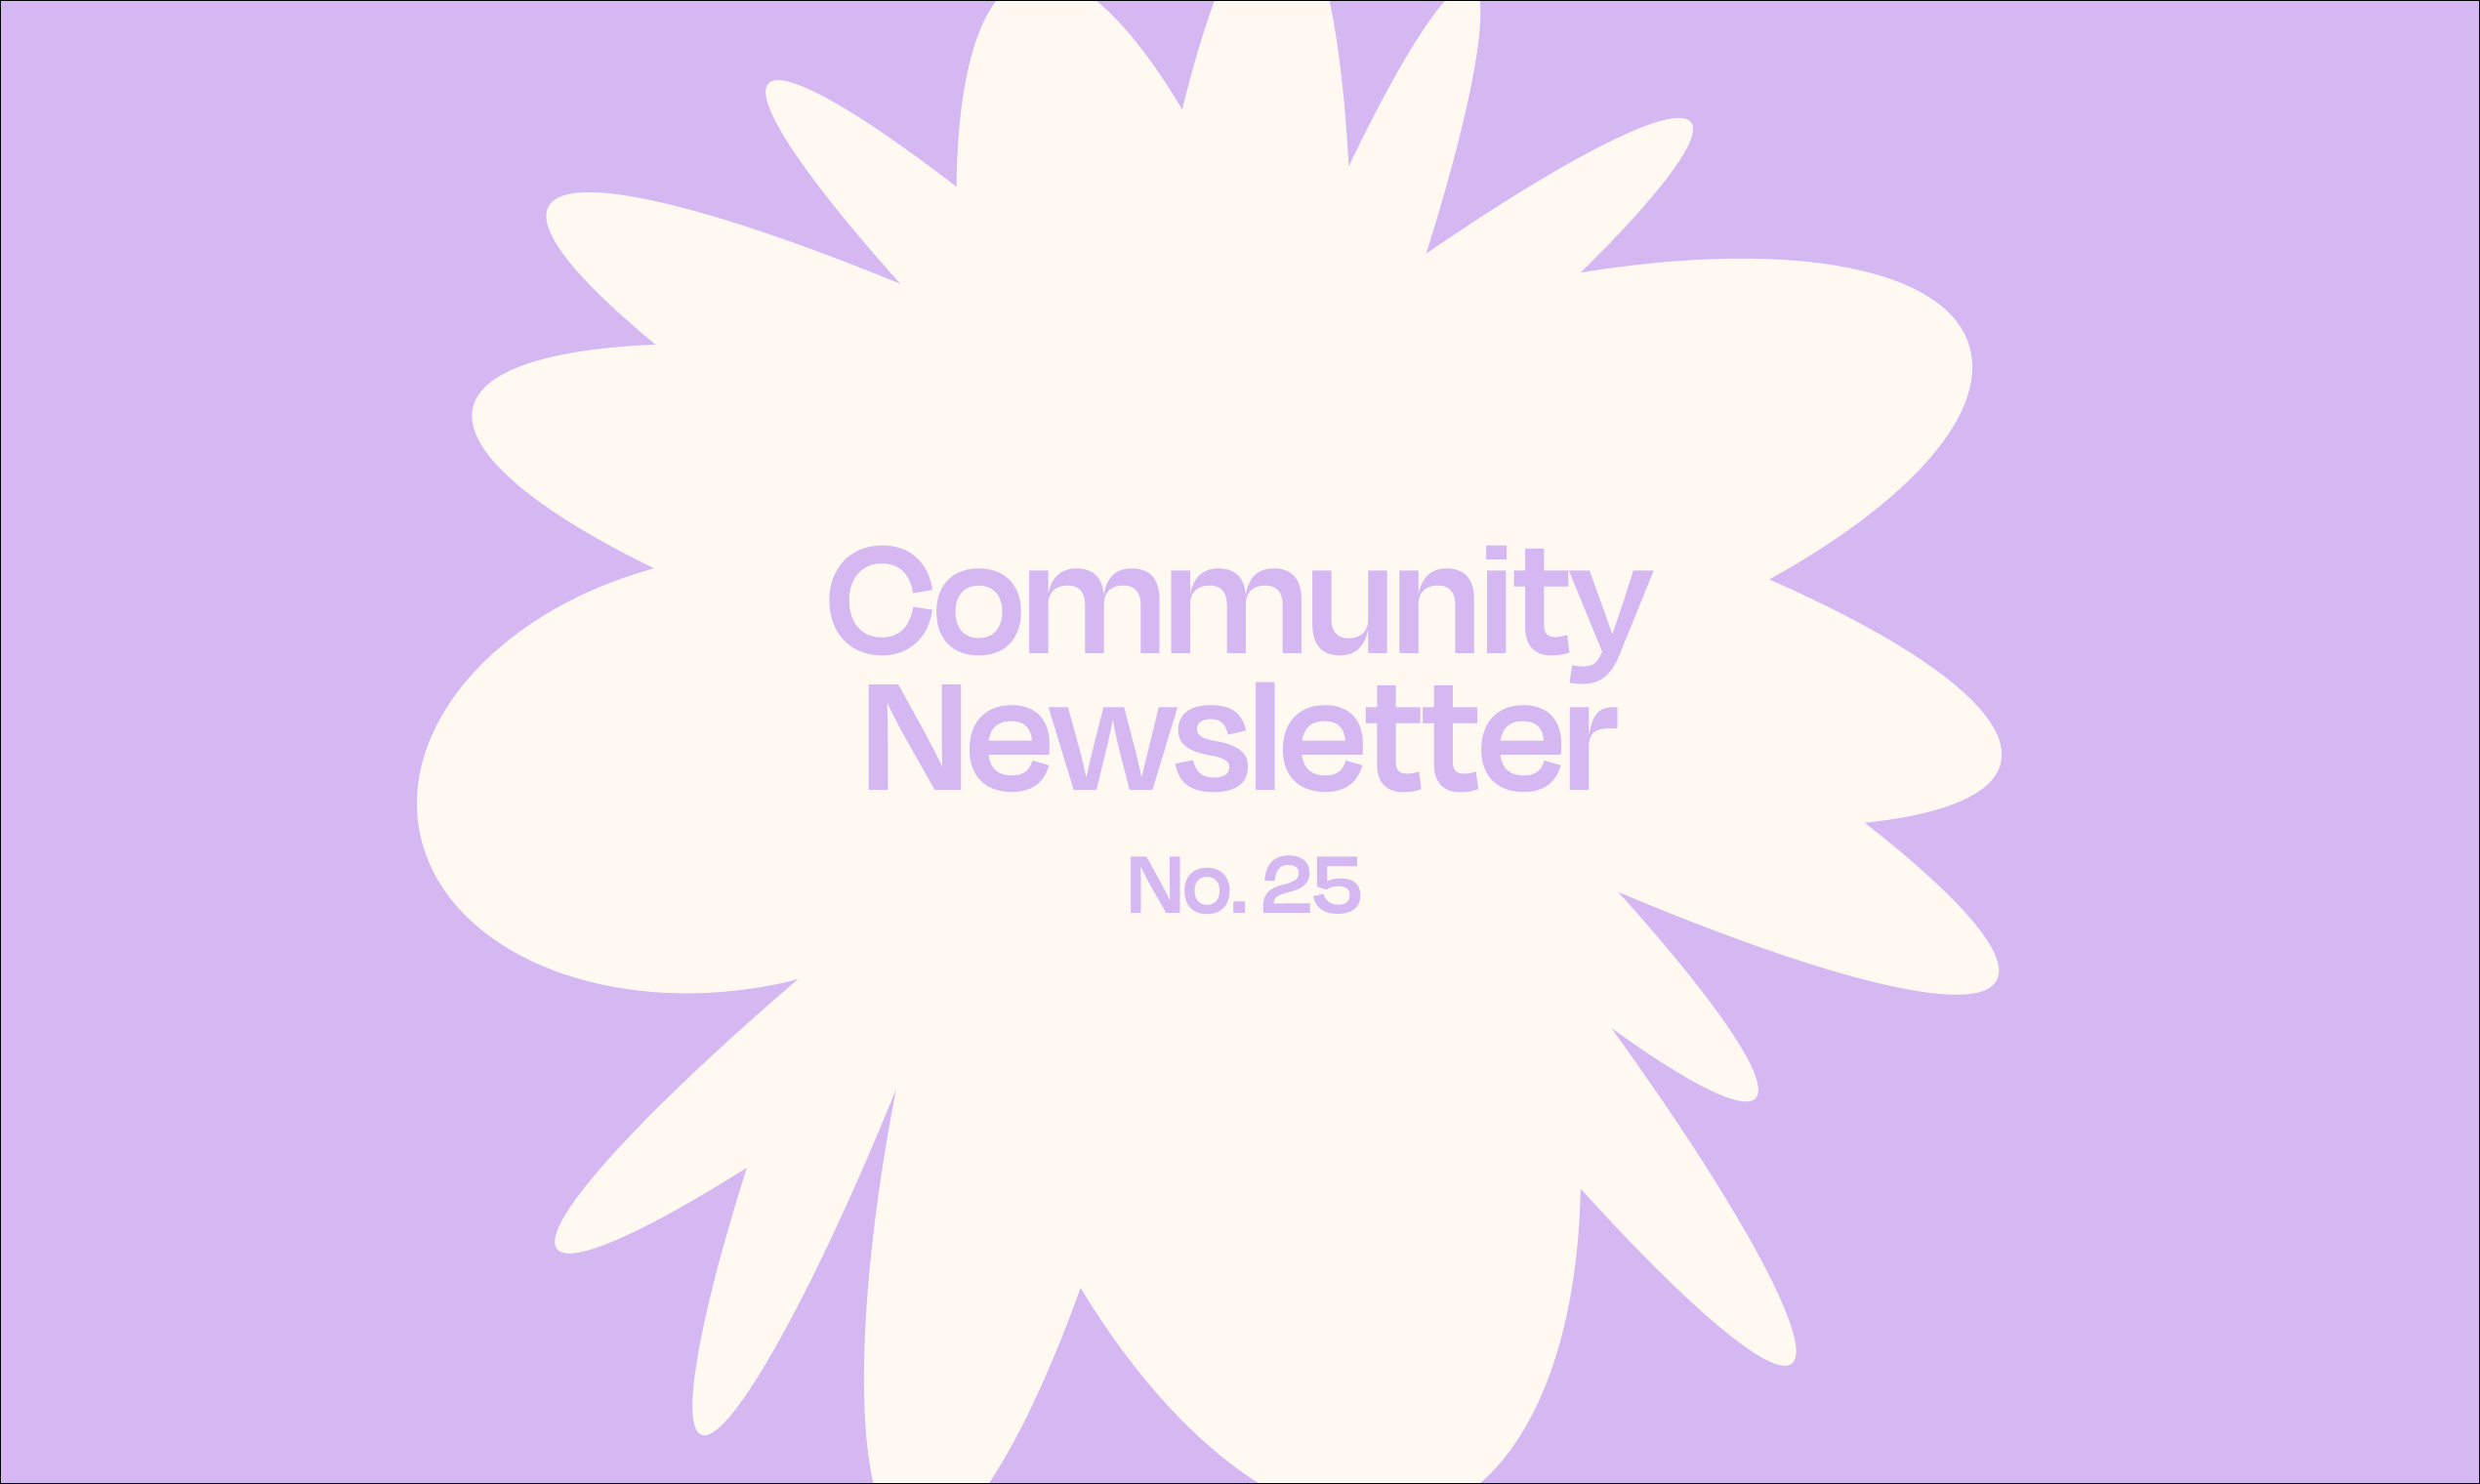 Norby Community Newsletter – No. 25